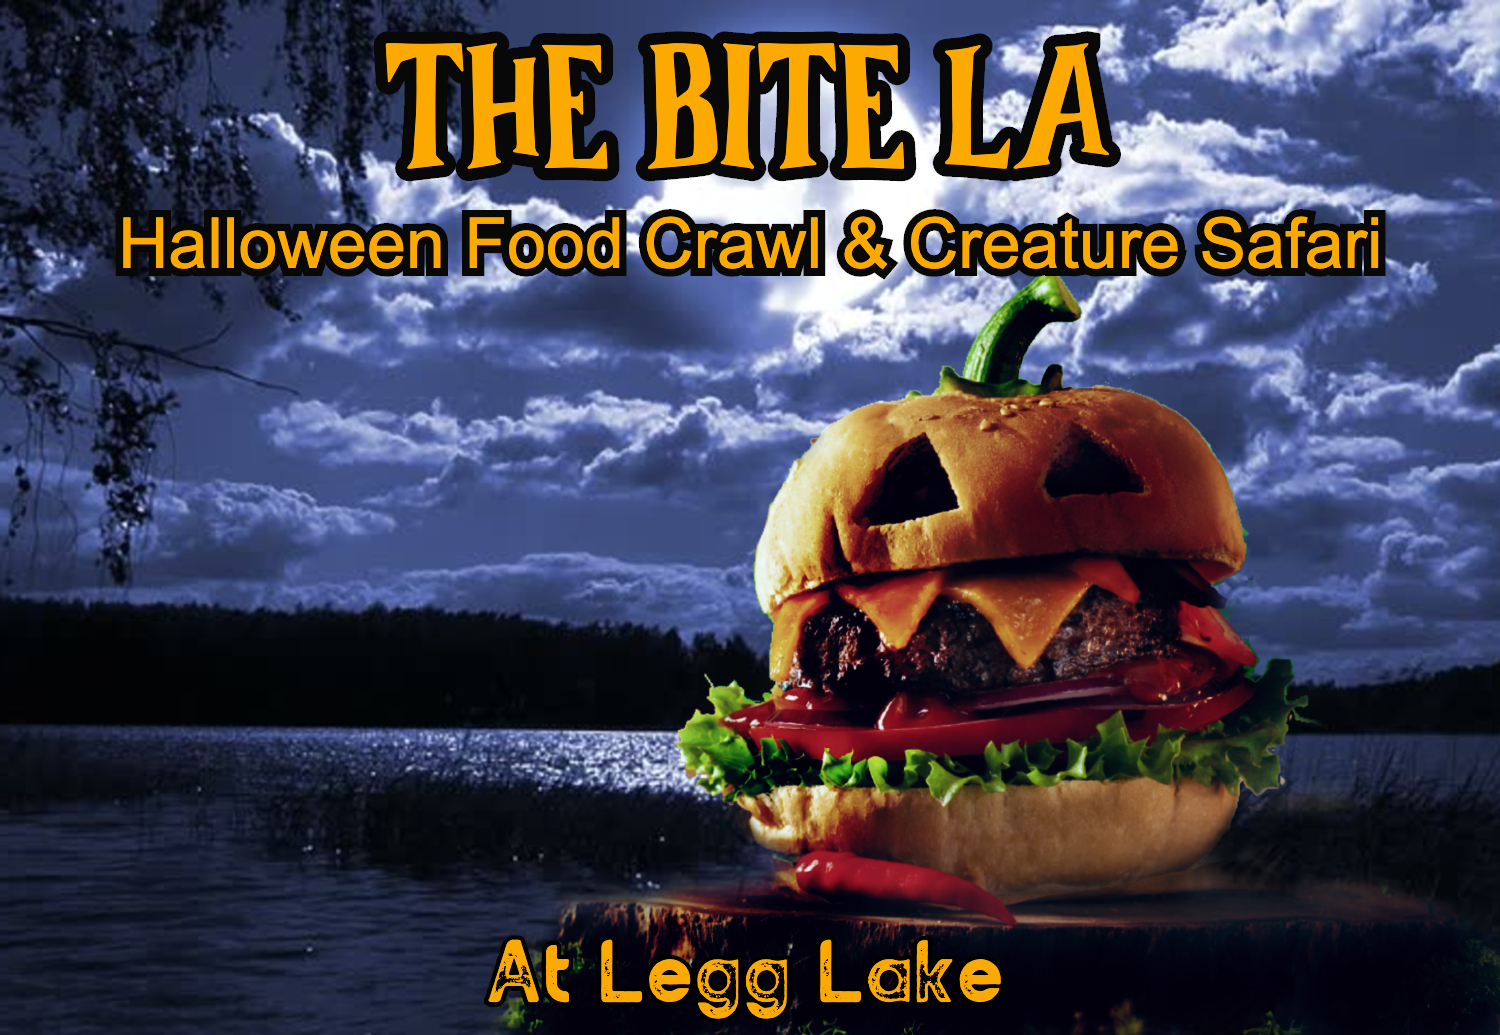 Halloween 2020 Things To Do In Los Angeles Things To Do In Los Angeles: Halloween 2020: THE BITE LA